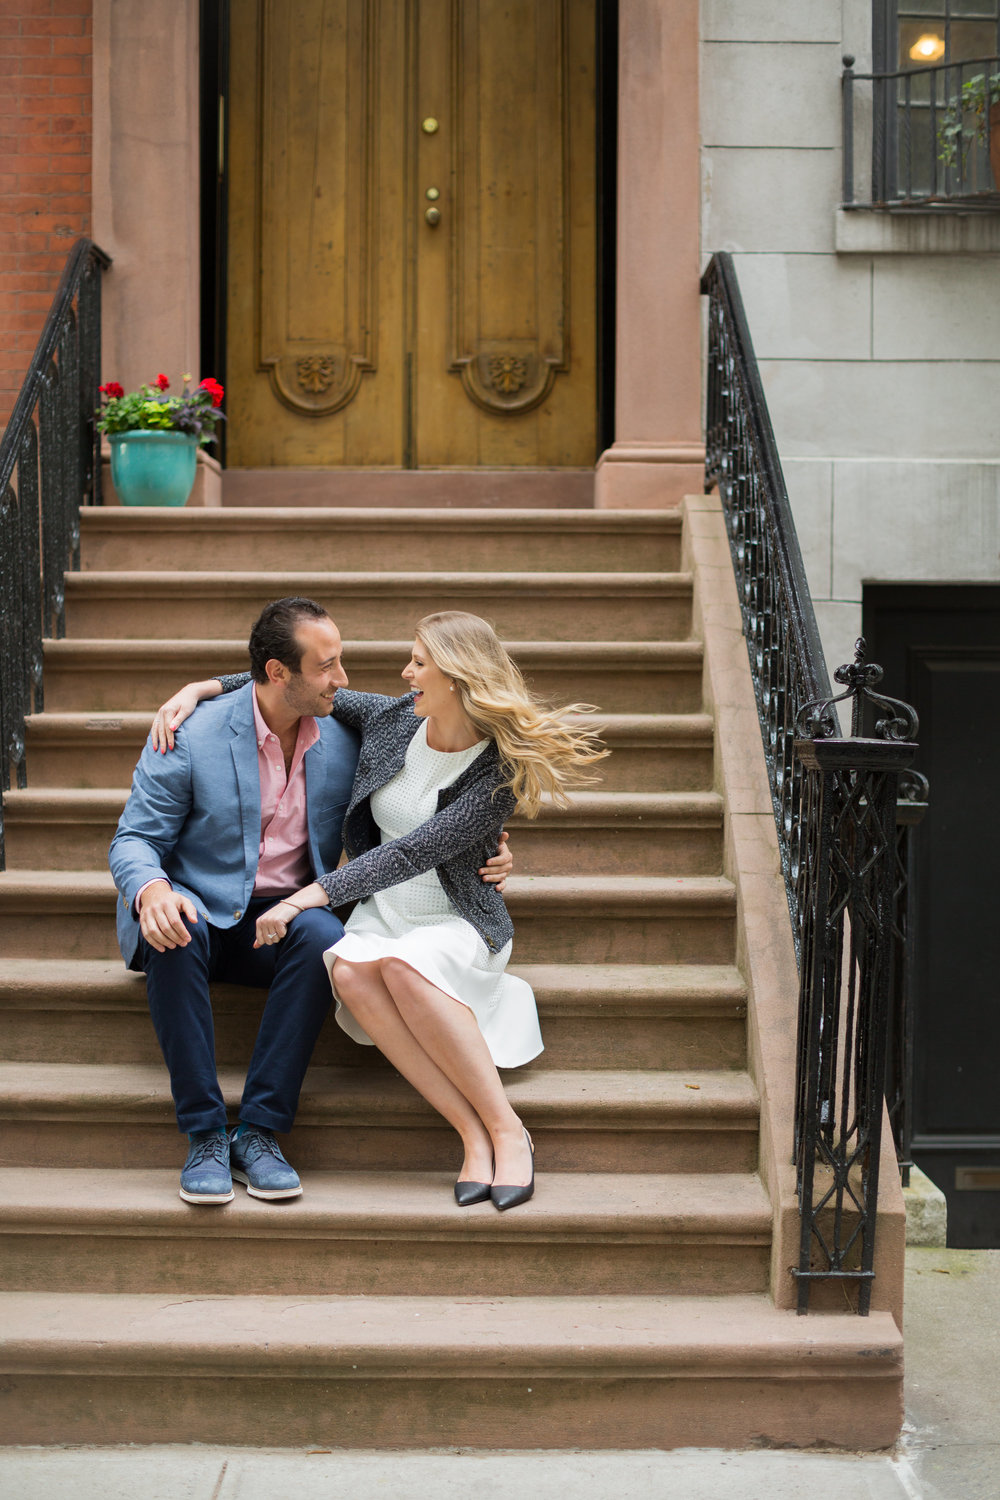 Melissa Kruse Photography - Courtney & JP Gramercy NYC Engagement Photos-115.jpg